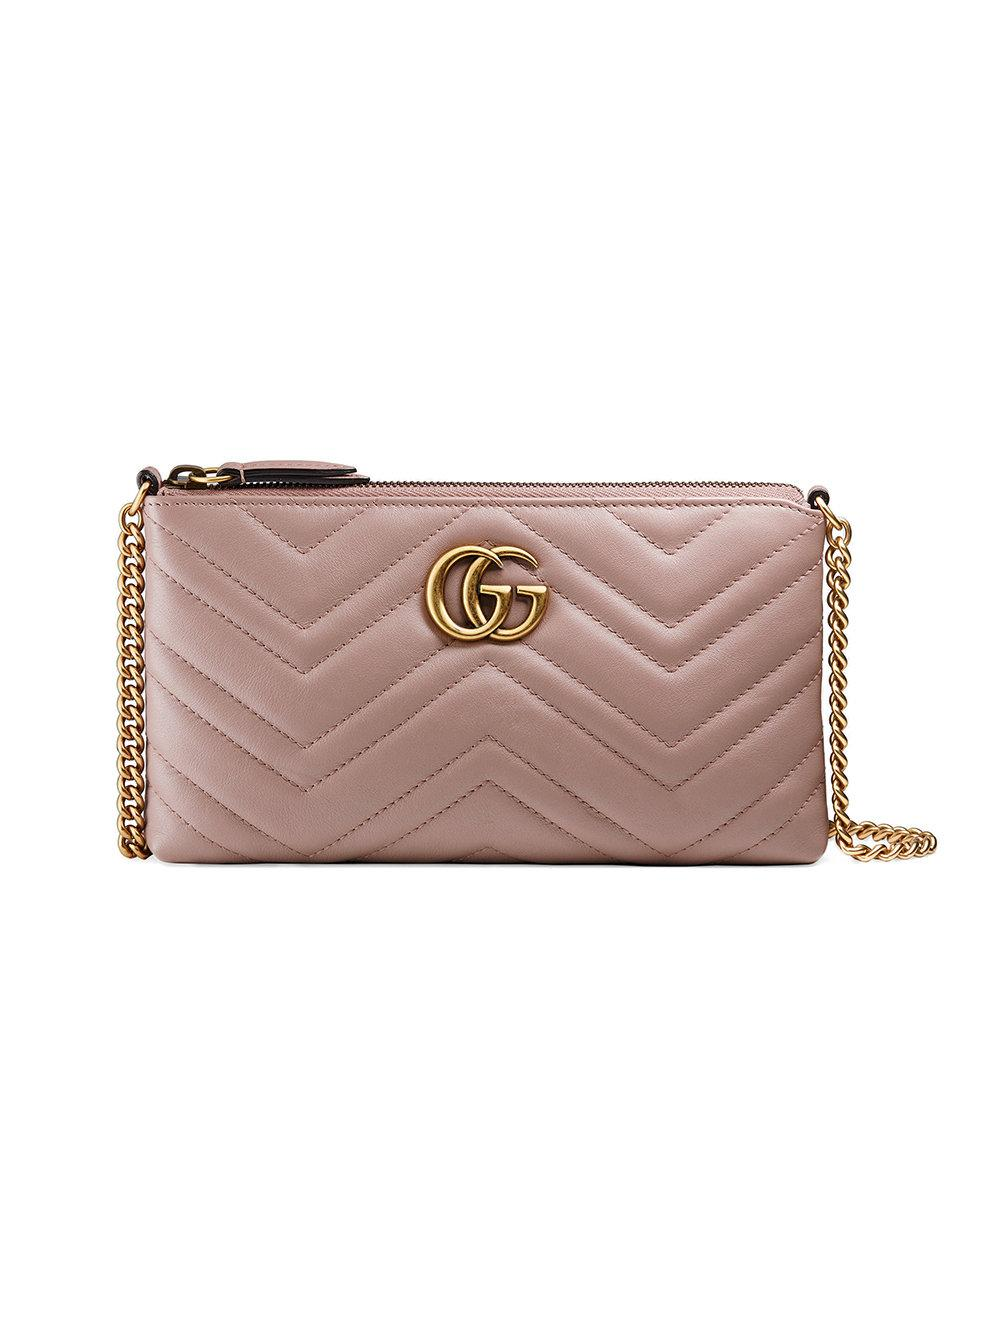 314c5f5494a49a Gg Marmont Leather Mini Chain Bag Uk | Stanford Center for ...